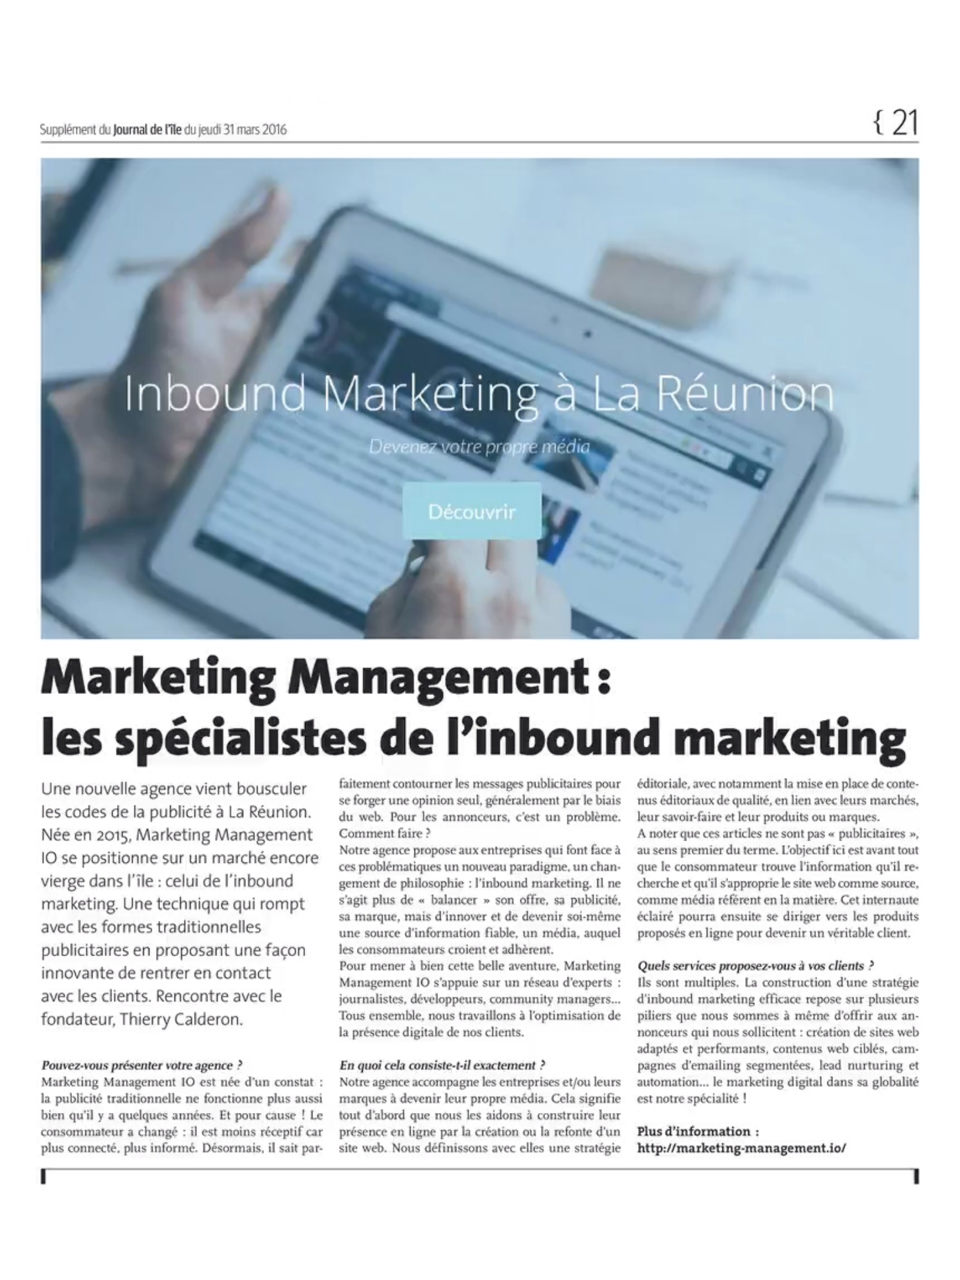 Marketing_Management_IO-_Made_in_Reunion-_31_mars_2016.png